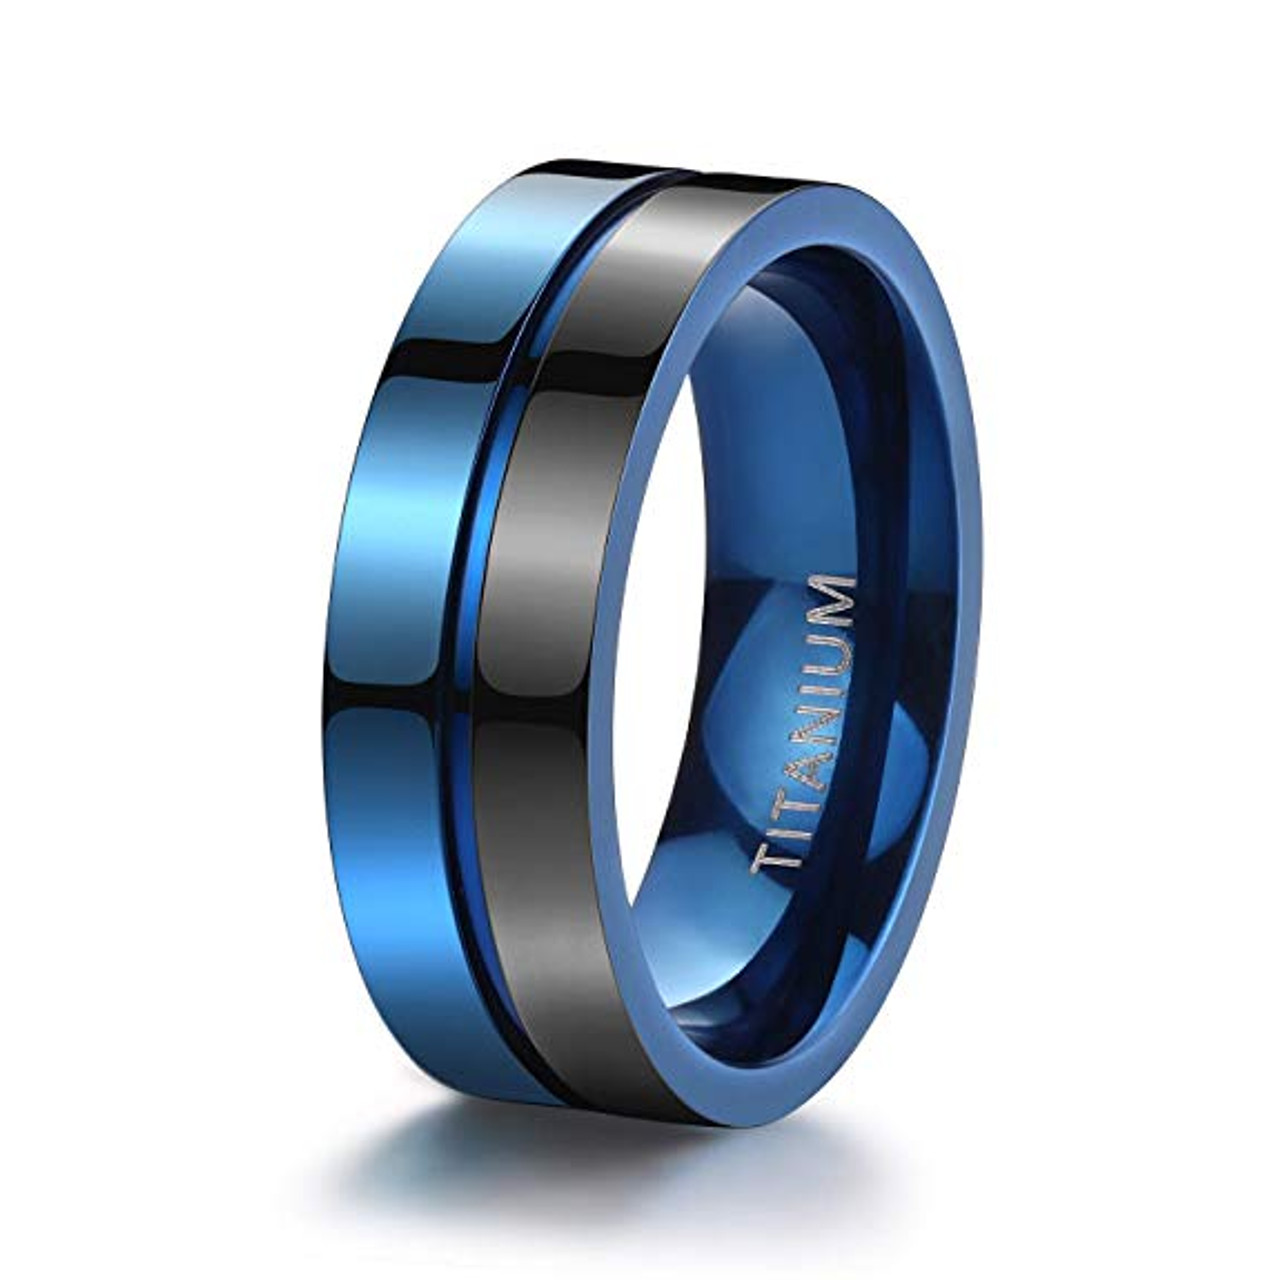 7mm Unisex Or Men S Titanium Wedding Ring Band Duo Tone Black And Blue Light Weight And Comfort Fit Ring Blingers